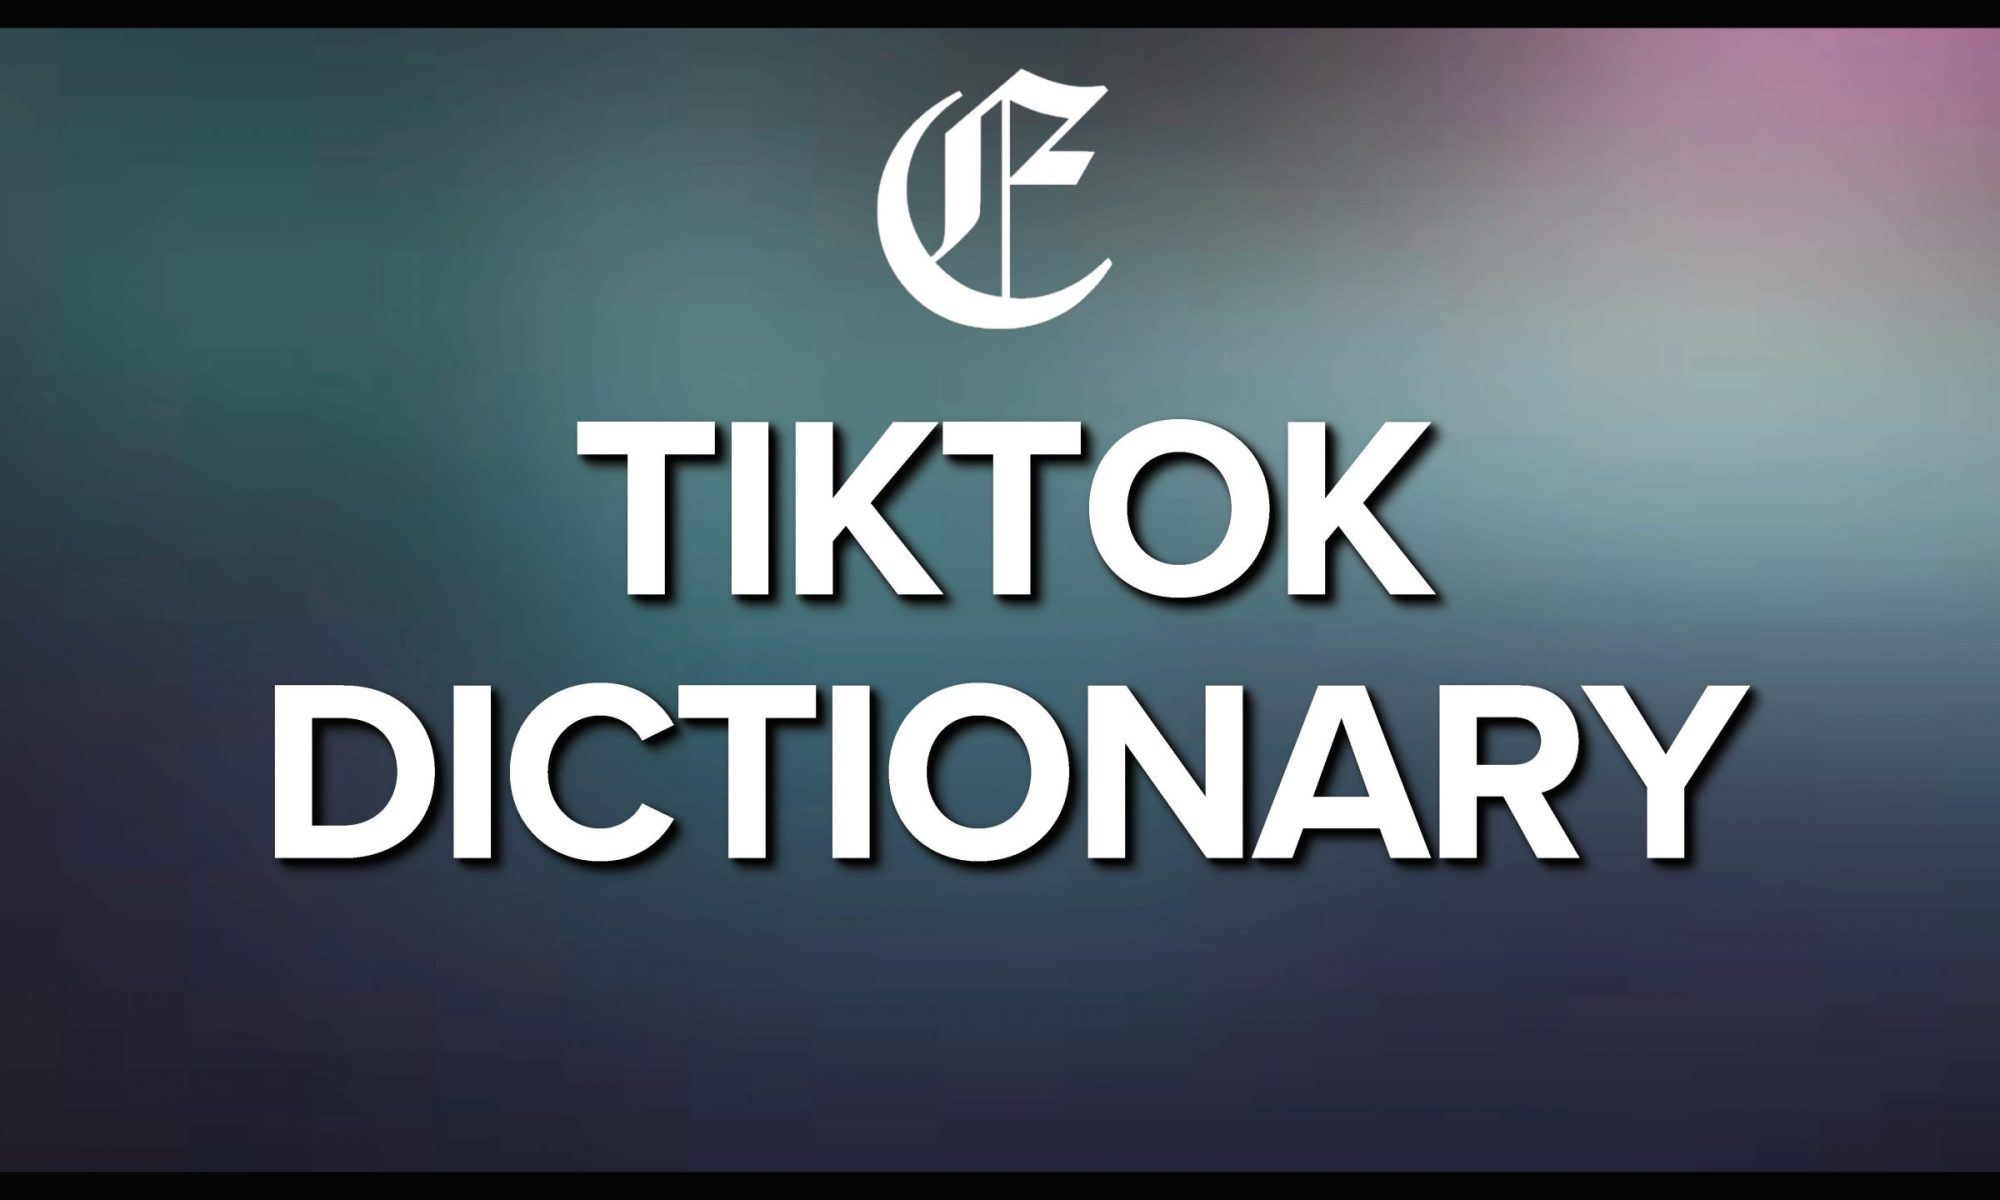 TikTok Disctionary